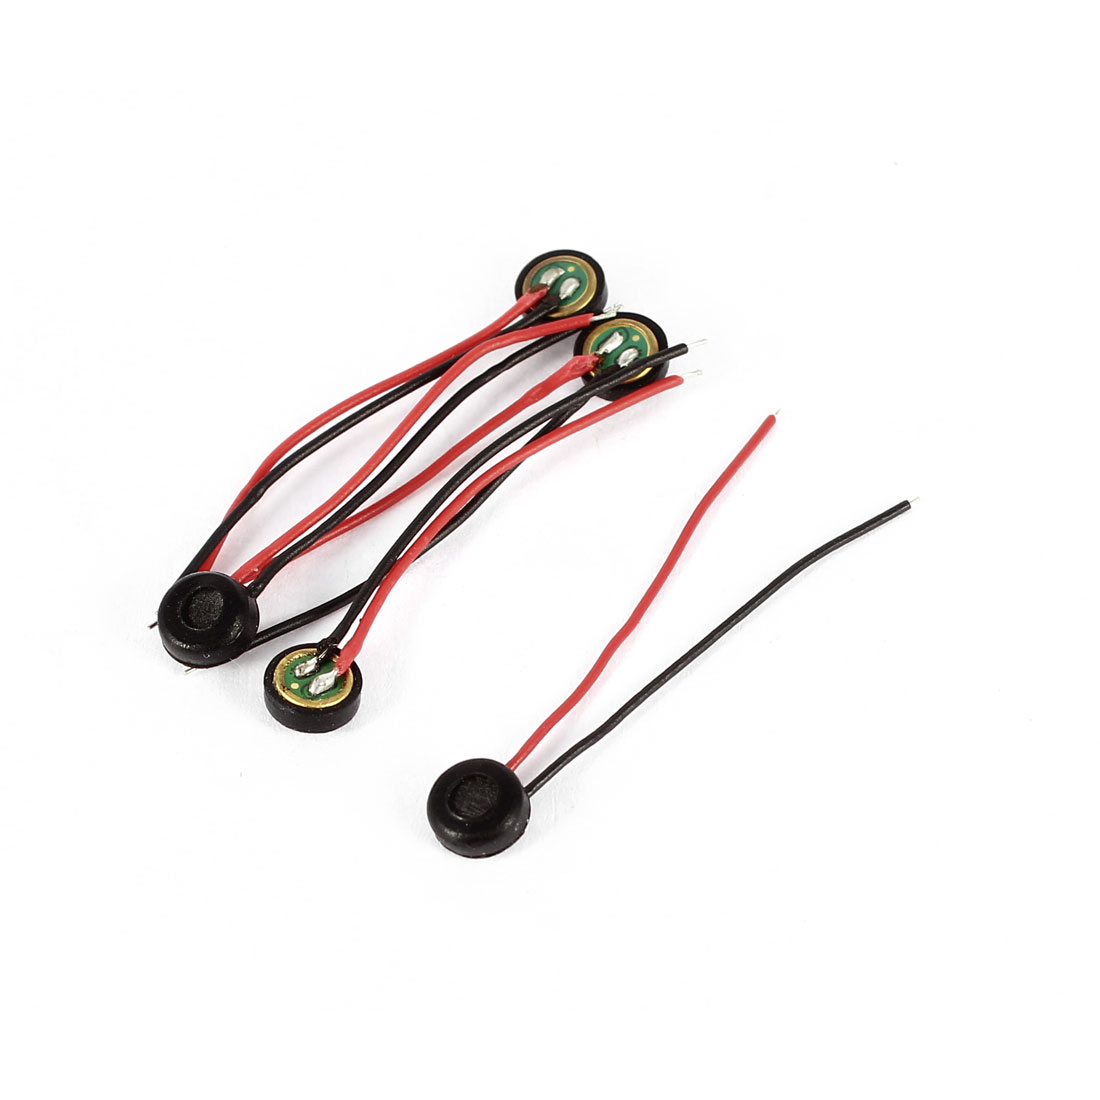 5pcs 2.6mm Wire Lead 4mm x 2mm Electret Condenser Microphone Pick-up